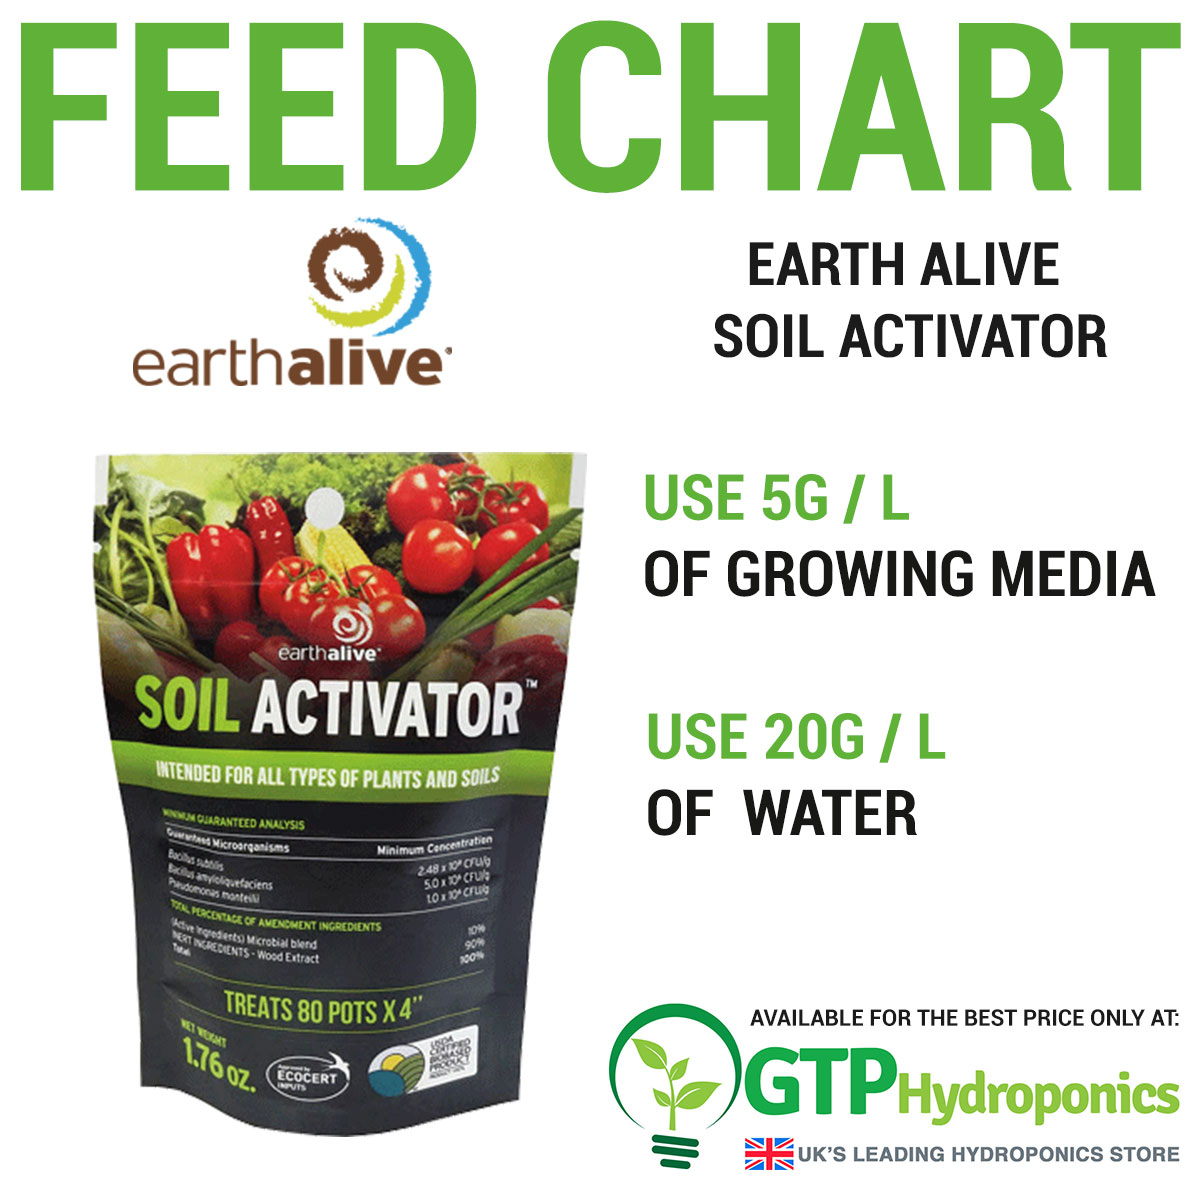 Earth Alive Soil Activator overview